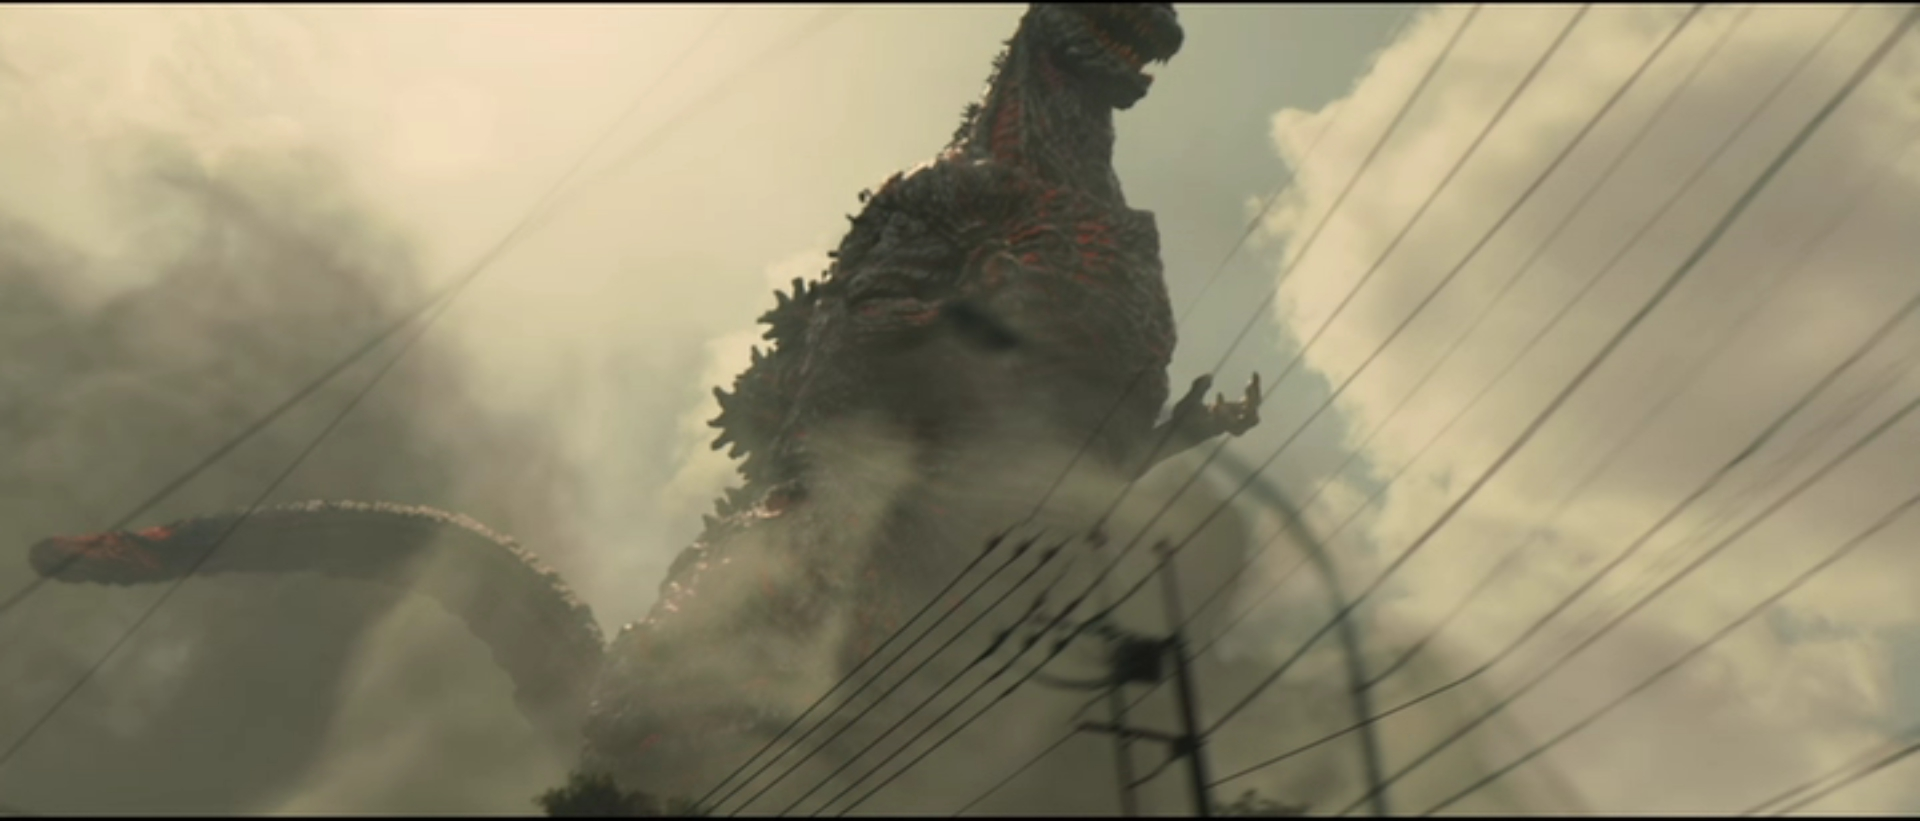 Big, bad Godzilla